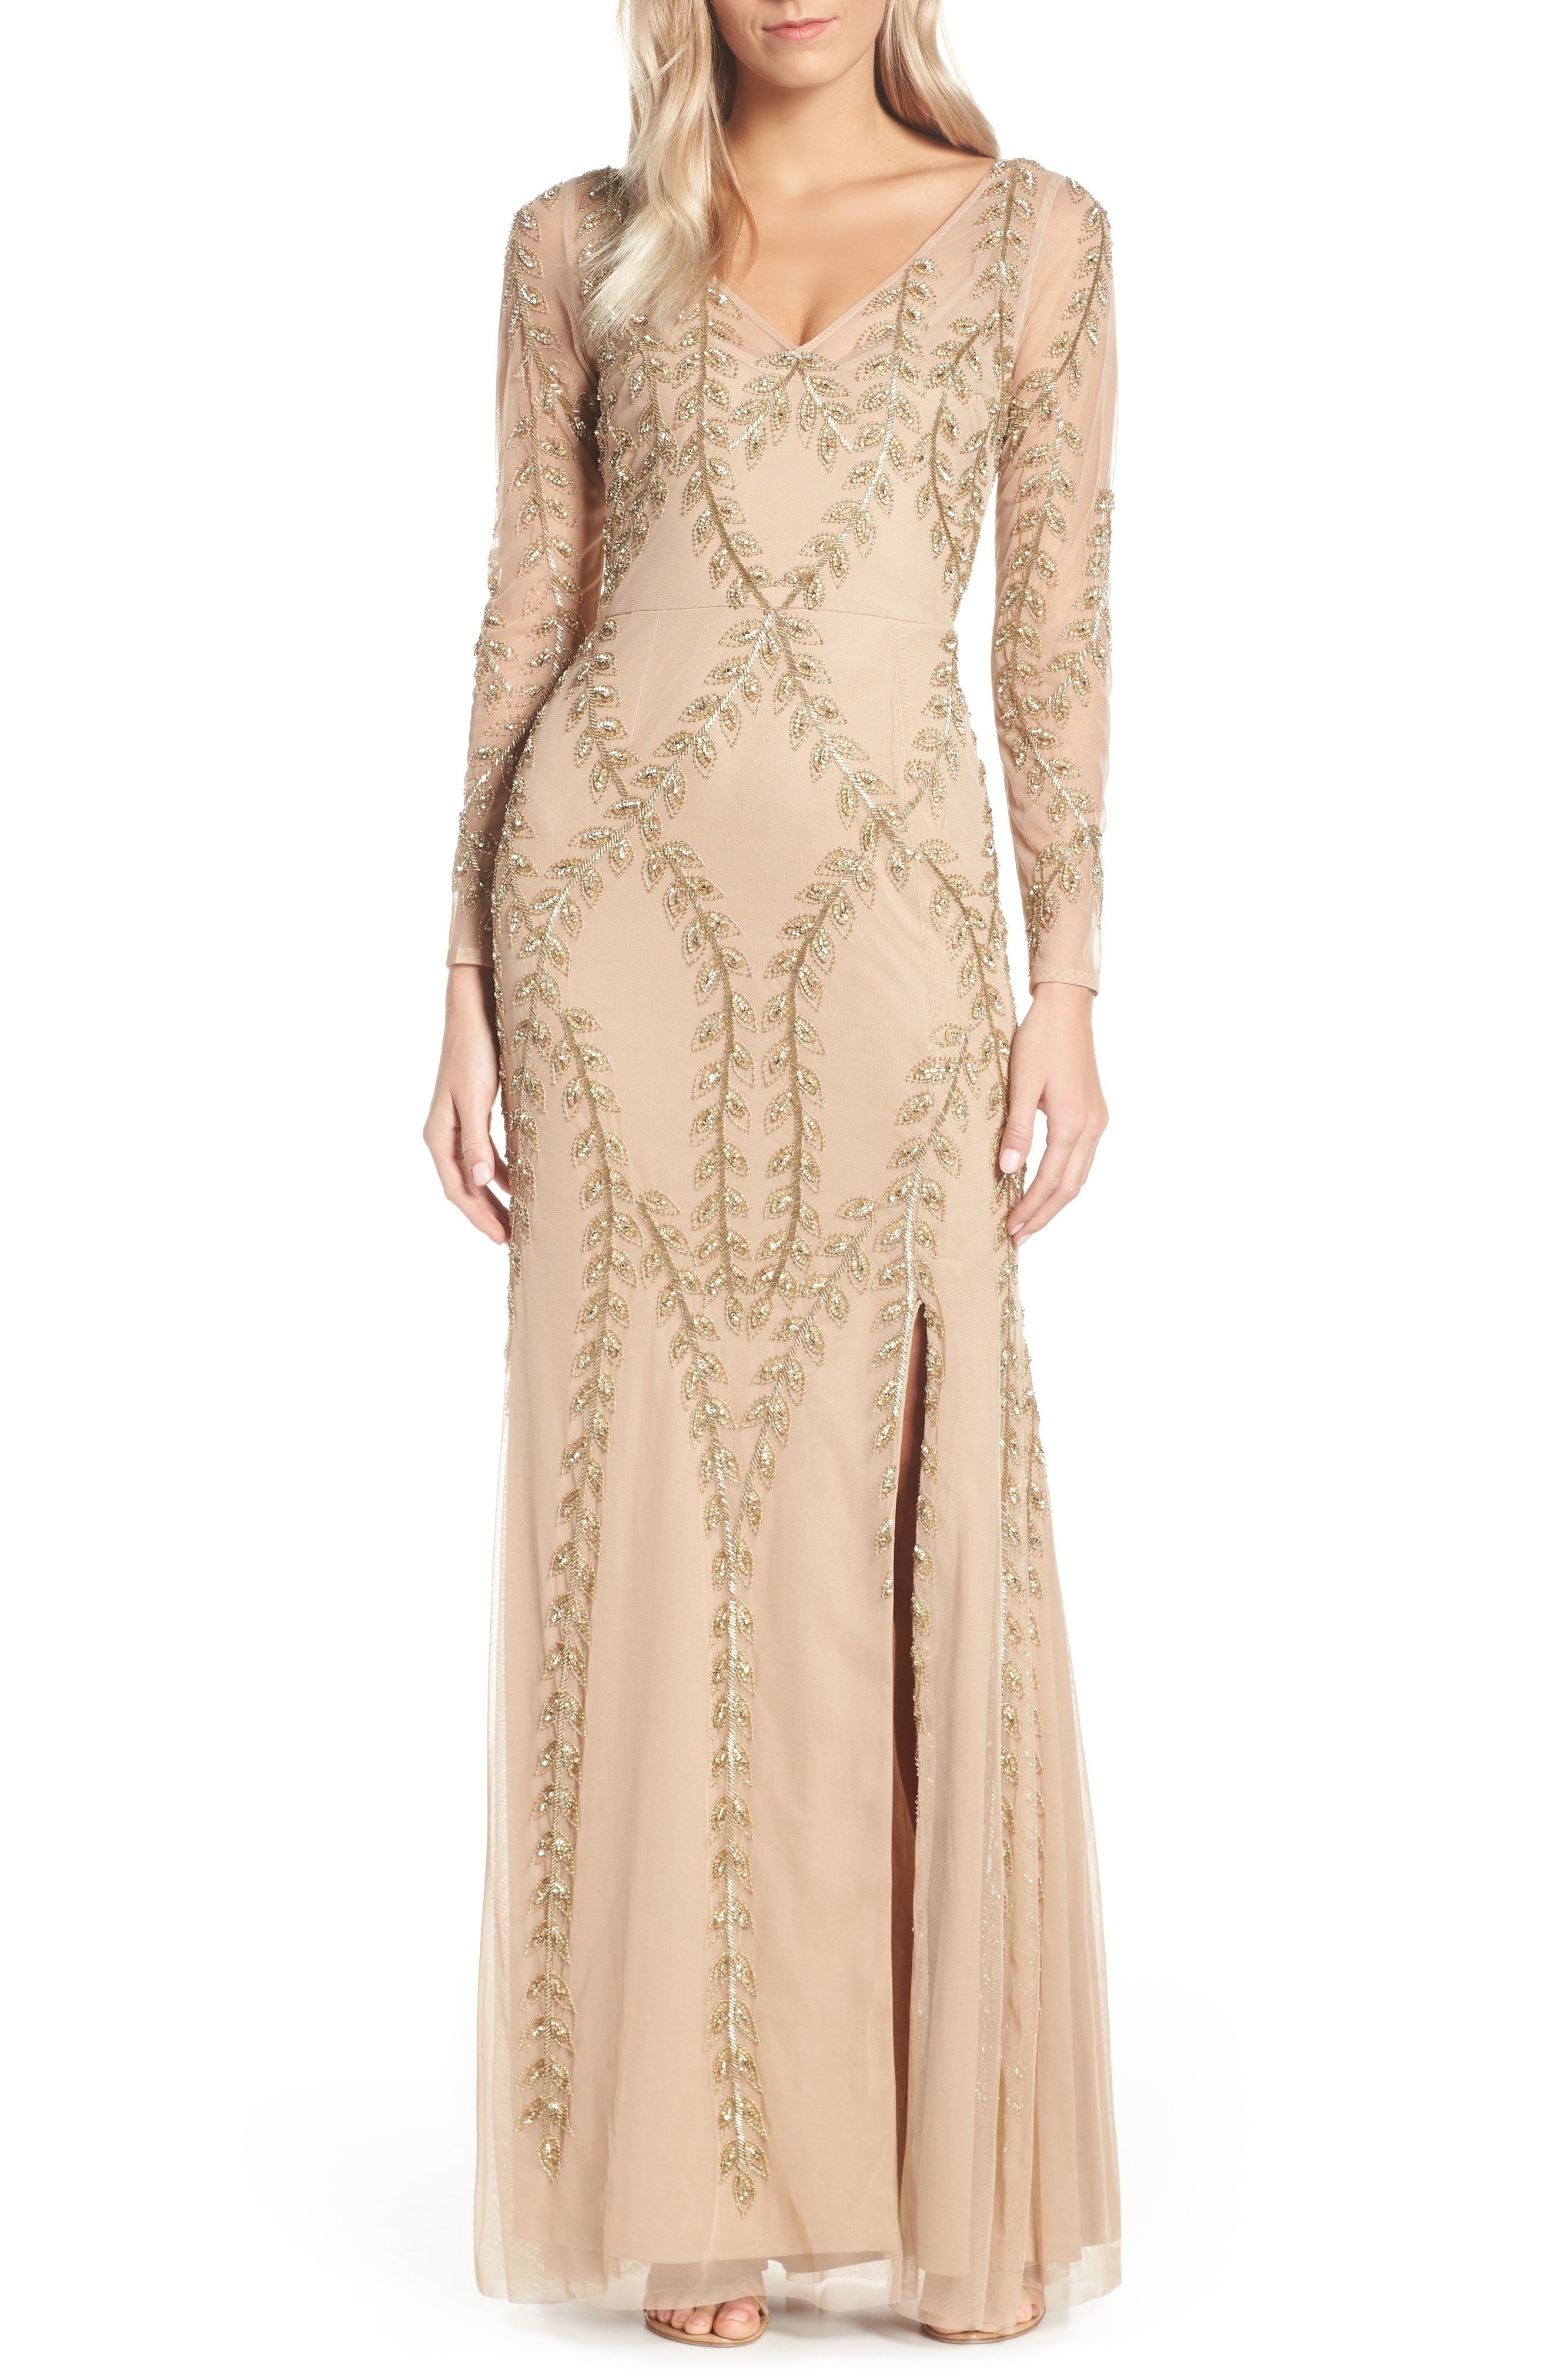 The Prettiest Champagne Beaded Dress For Mother Of The Bride